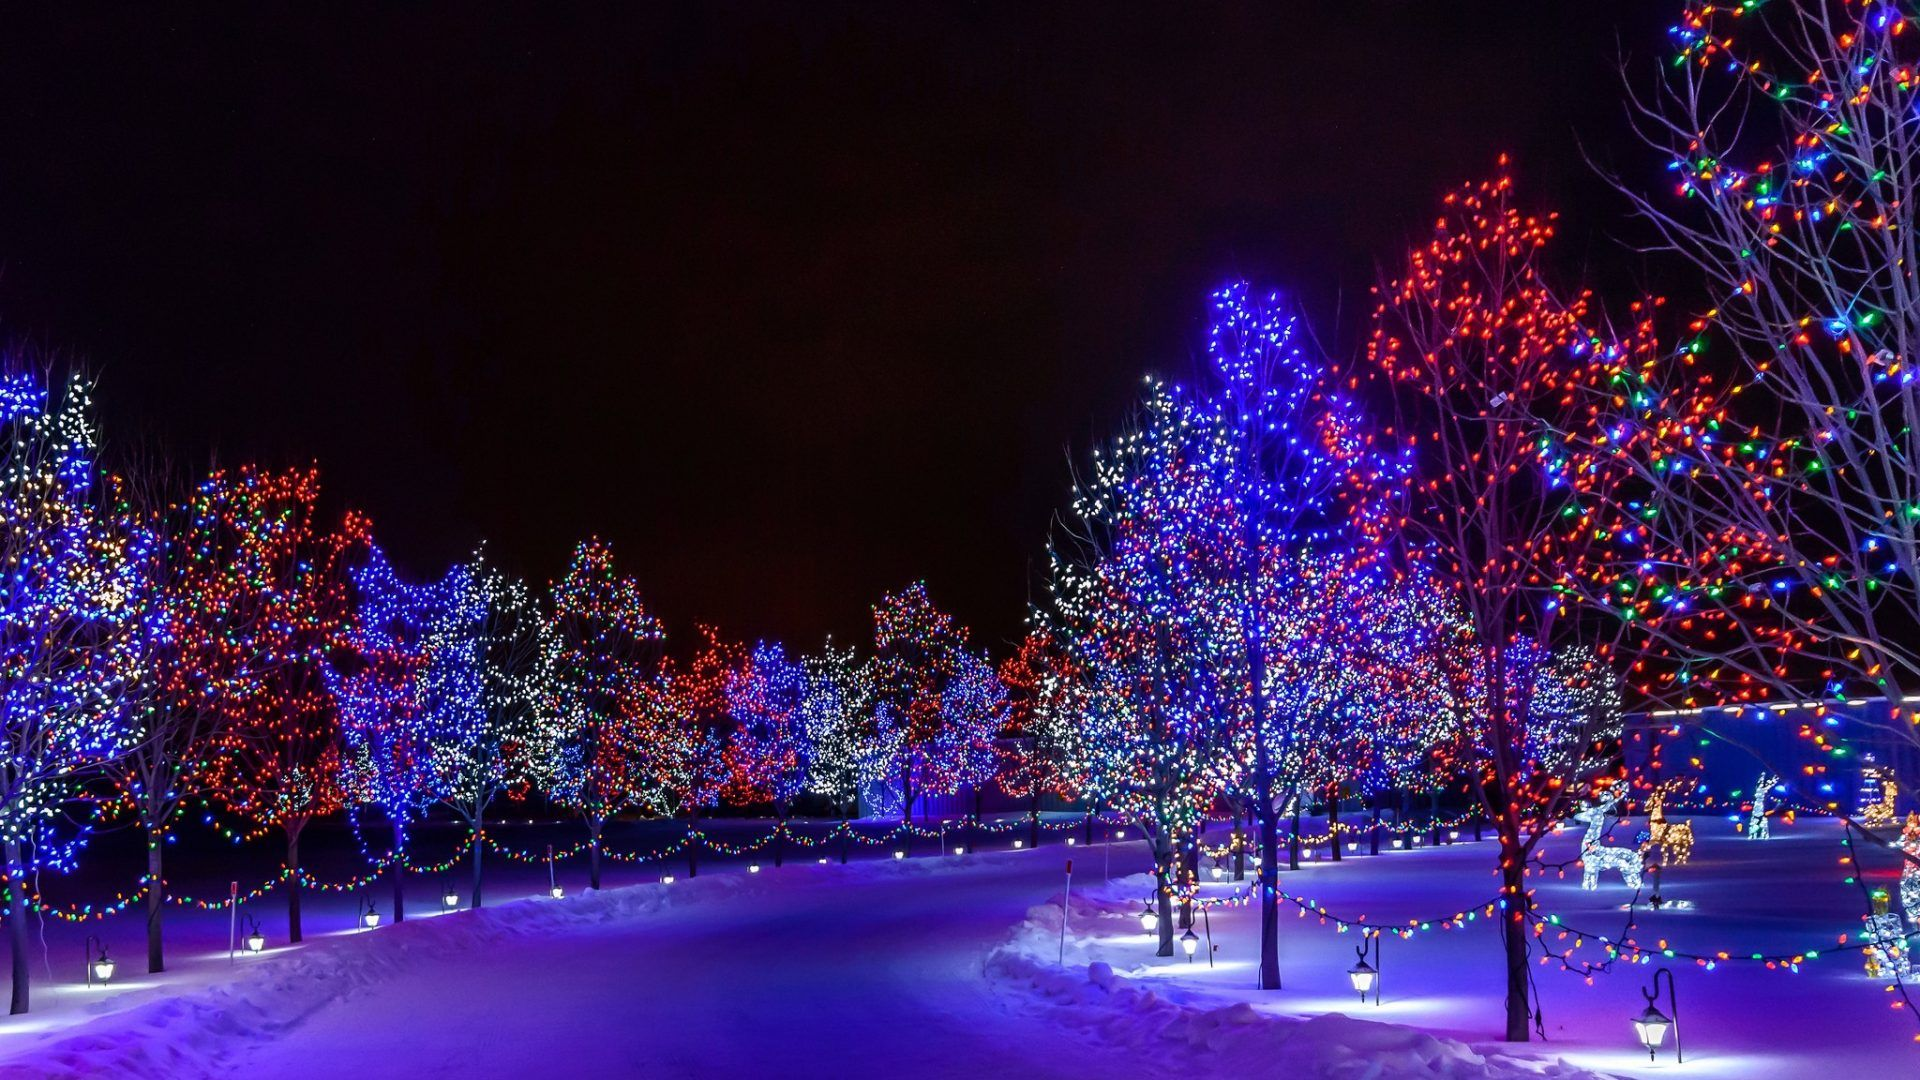 winter lights lanterns christmas road time magic merry